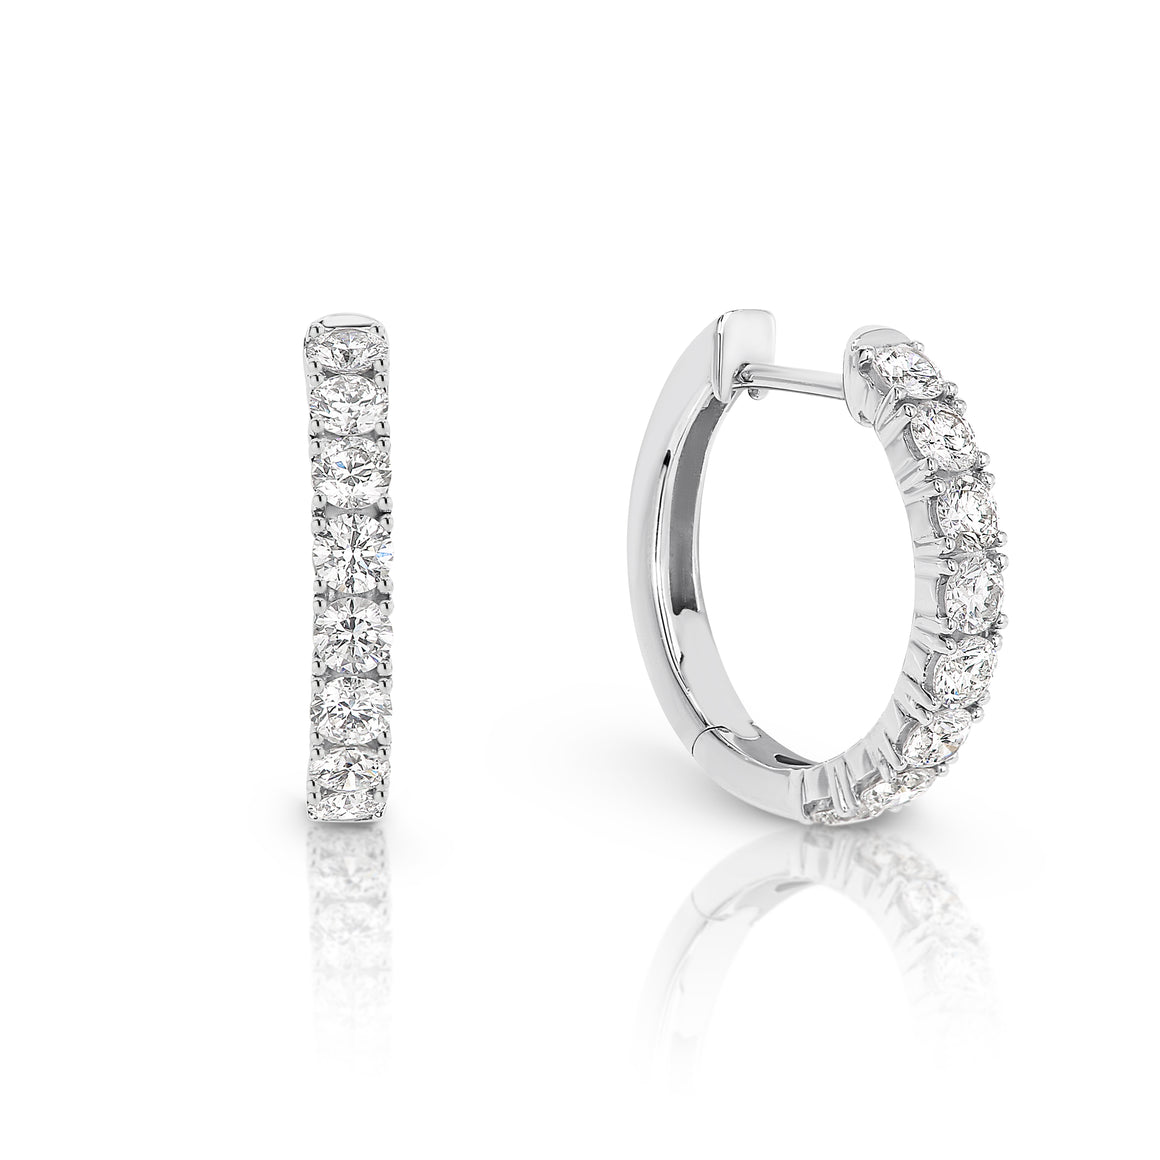 Diamond Hoop 'Cooper' Earrings - Gemma Stone  ABN:51 621 127 866